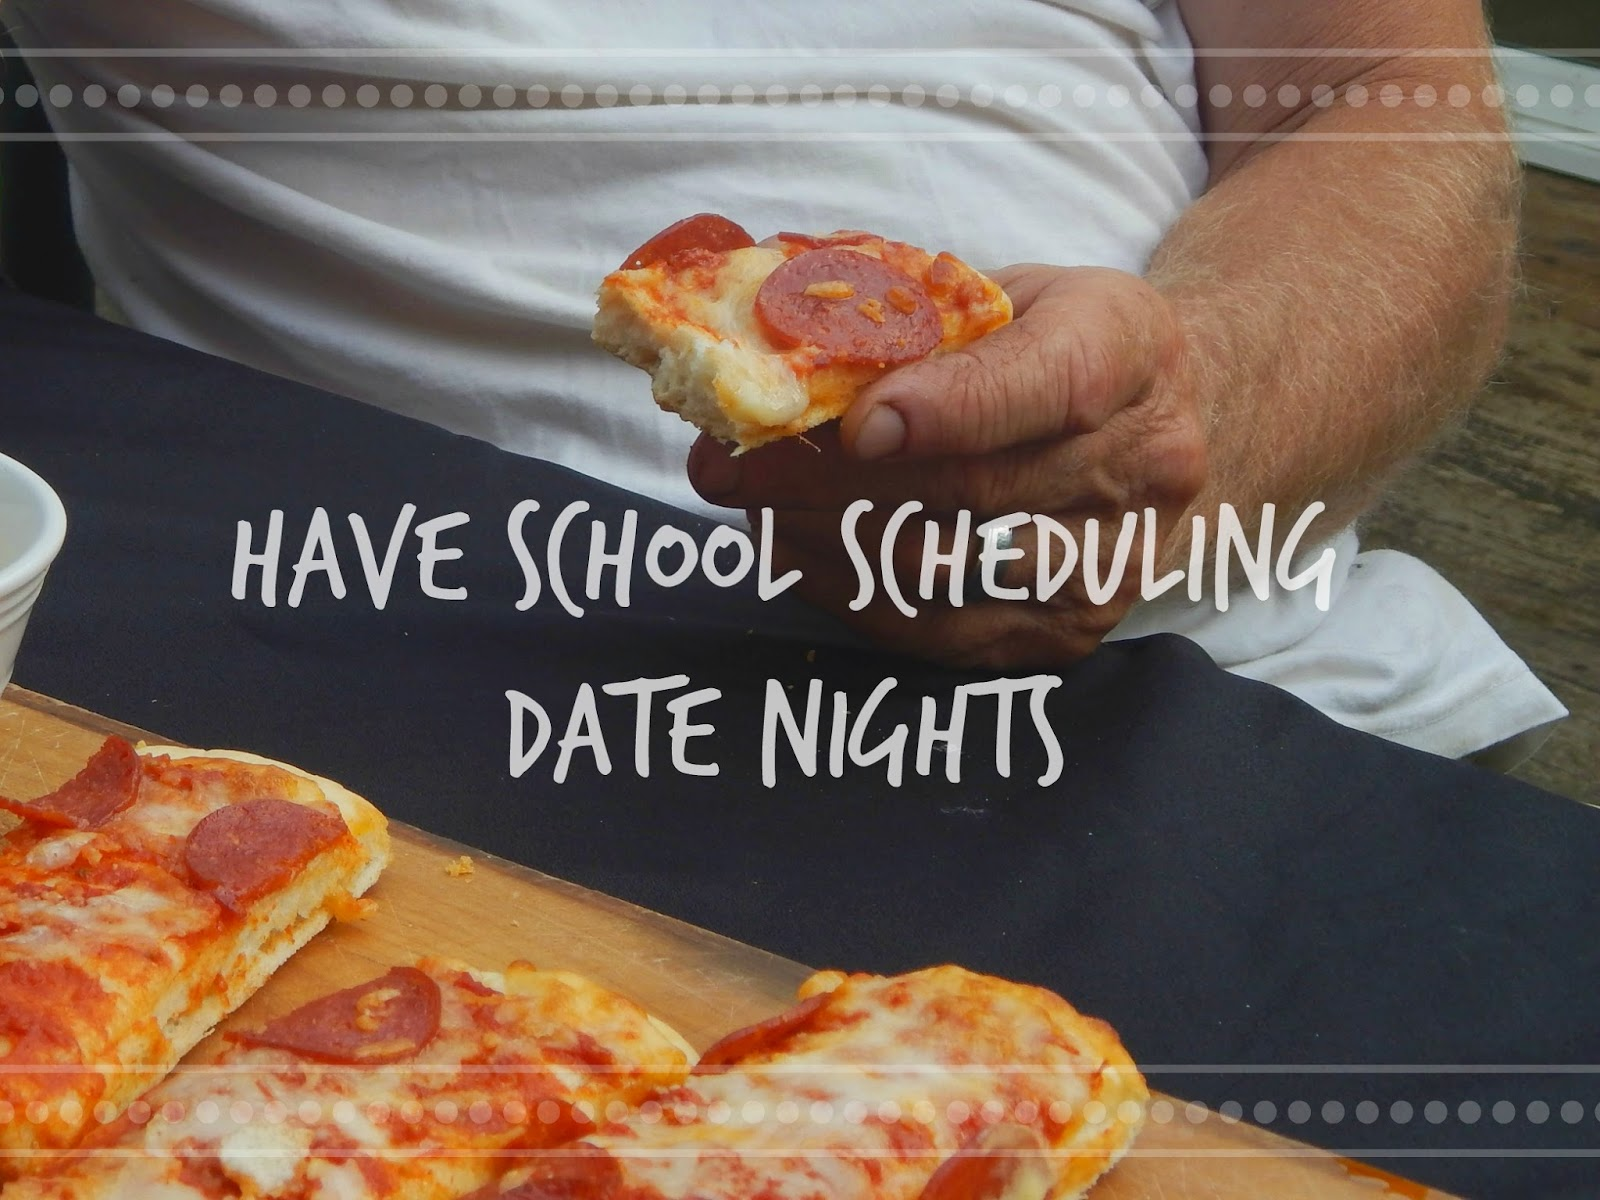 Have a school scheduling date night #FoodMadeSimple #shop #cbias